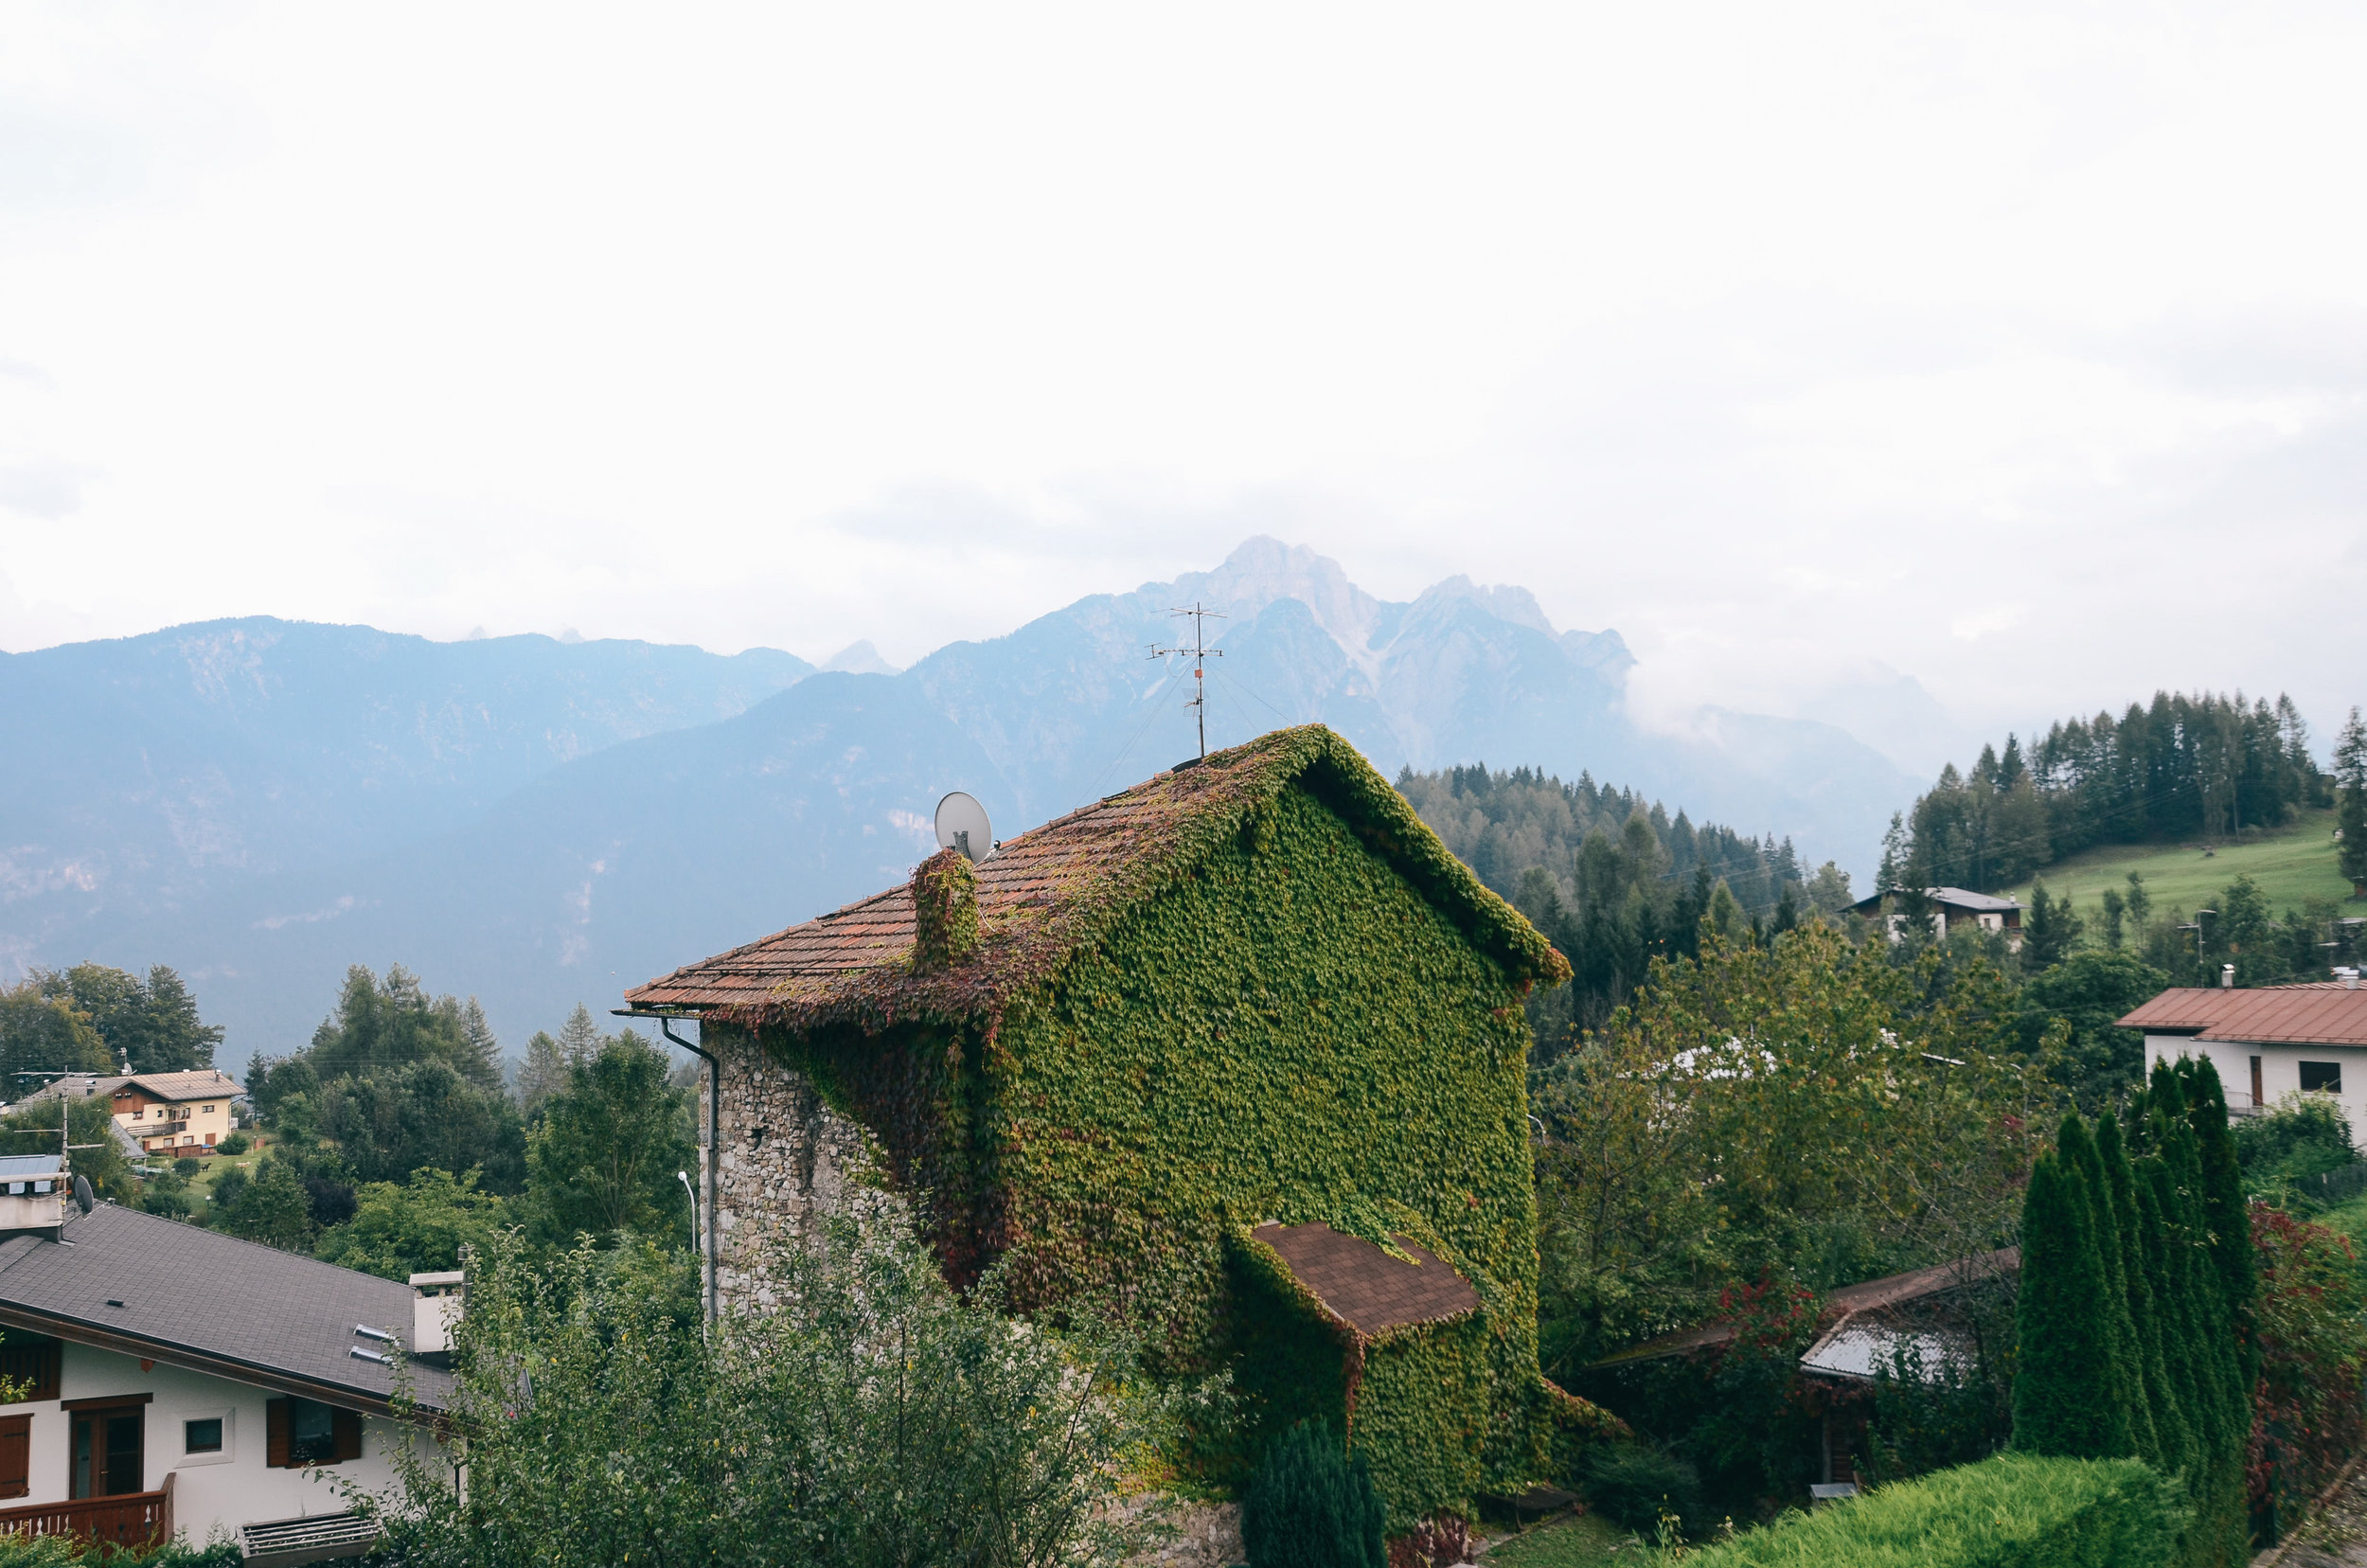 dolomites-why-the-italian-alps-should-be-your-next-mountain-adventure- travel-blog-27.jpg